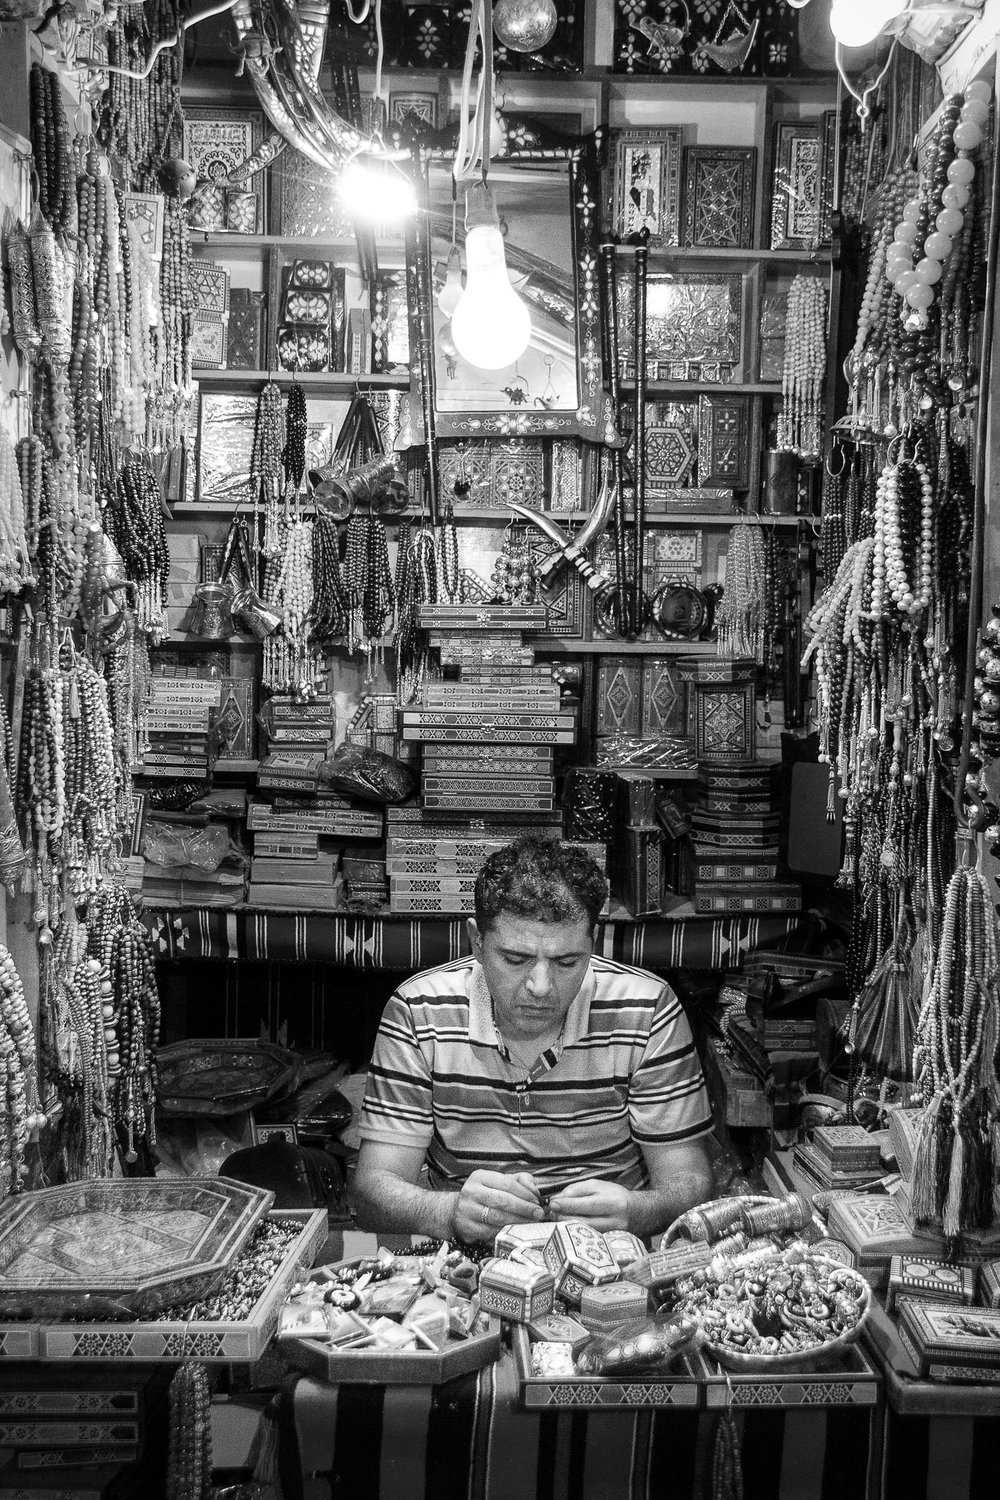 The Trinket Merchant (Aleppo)